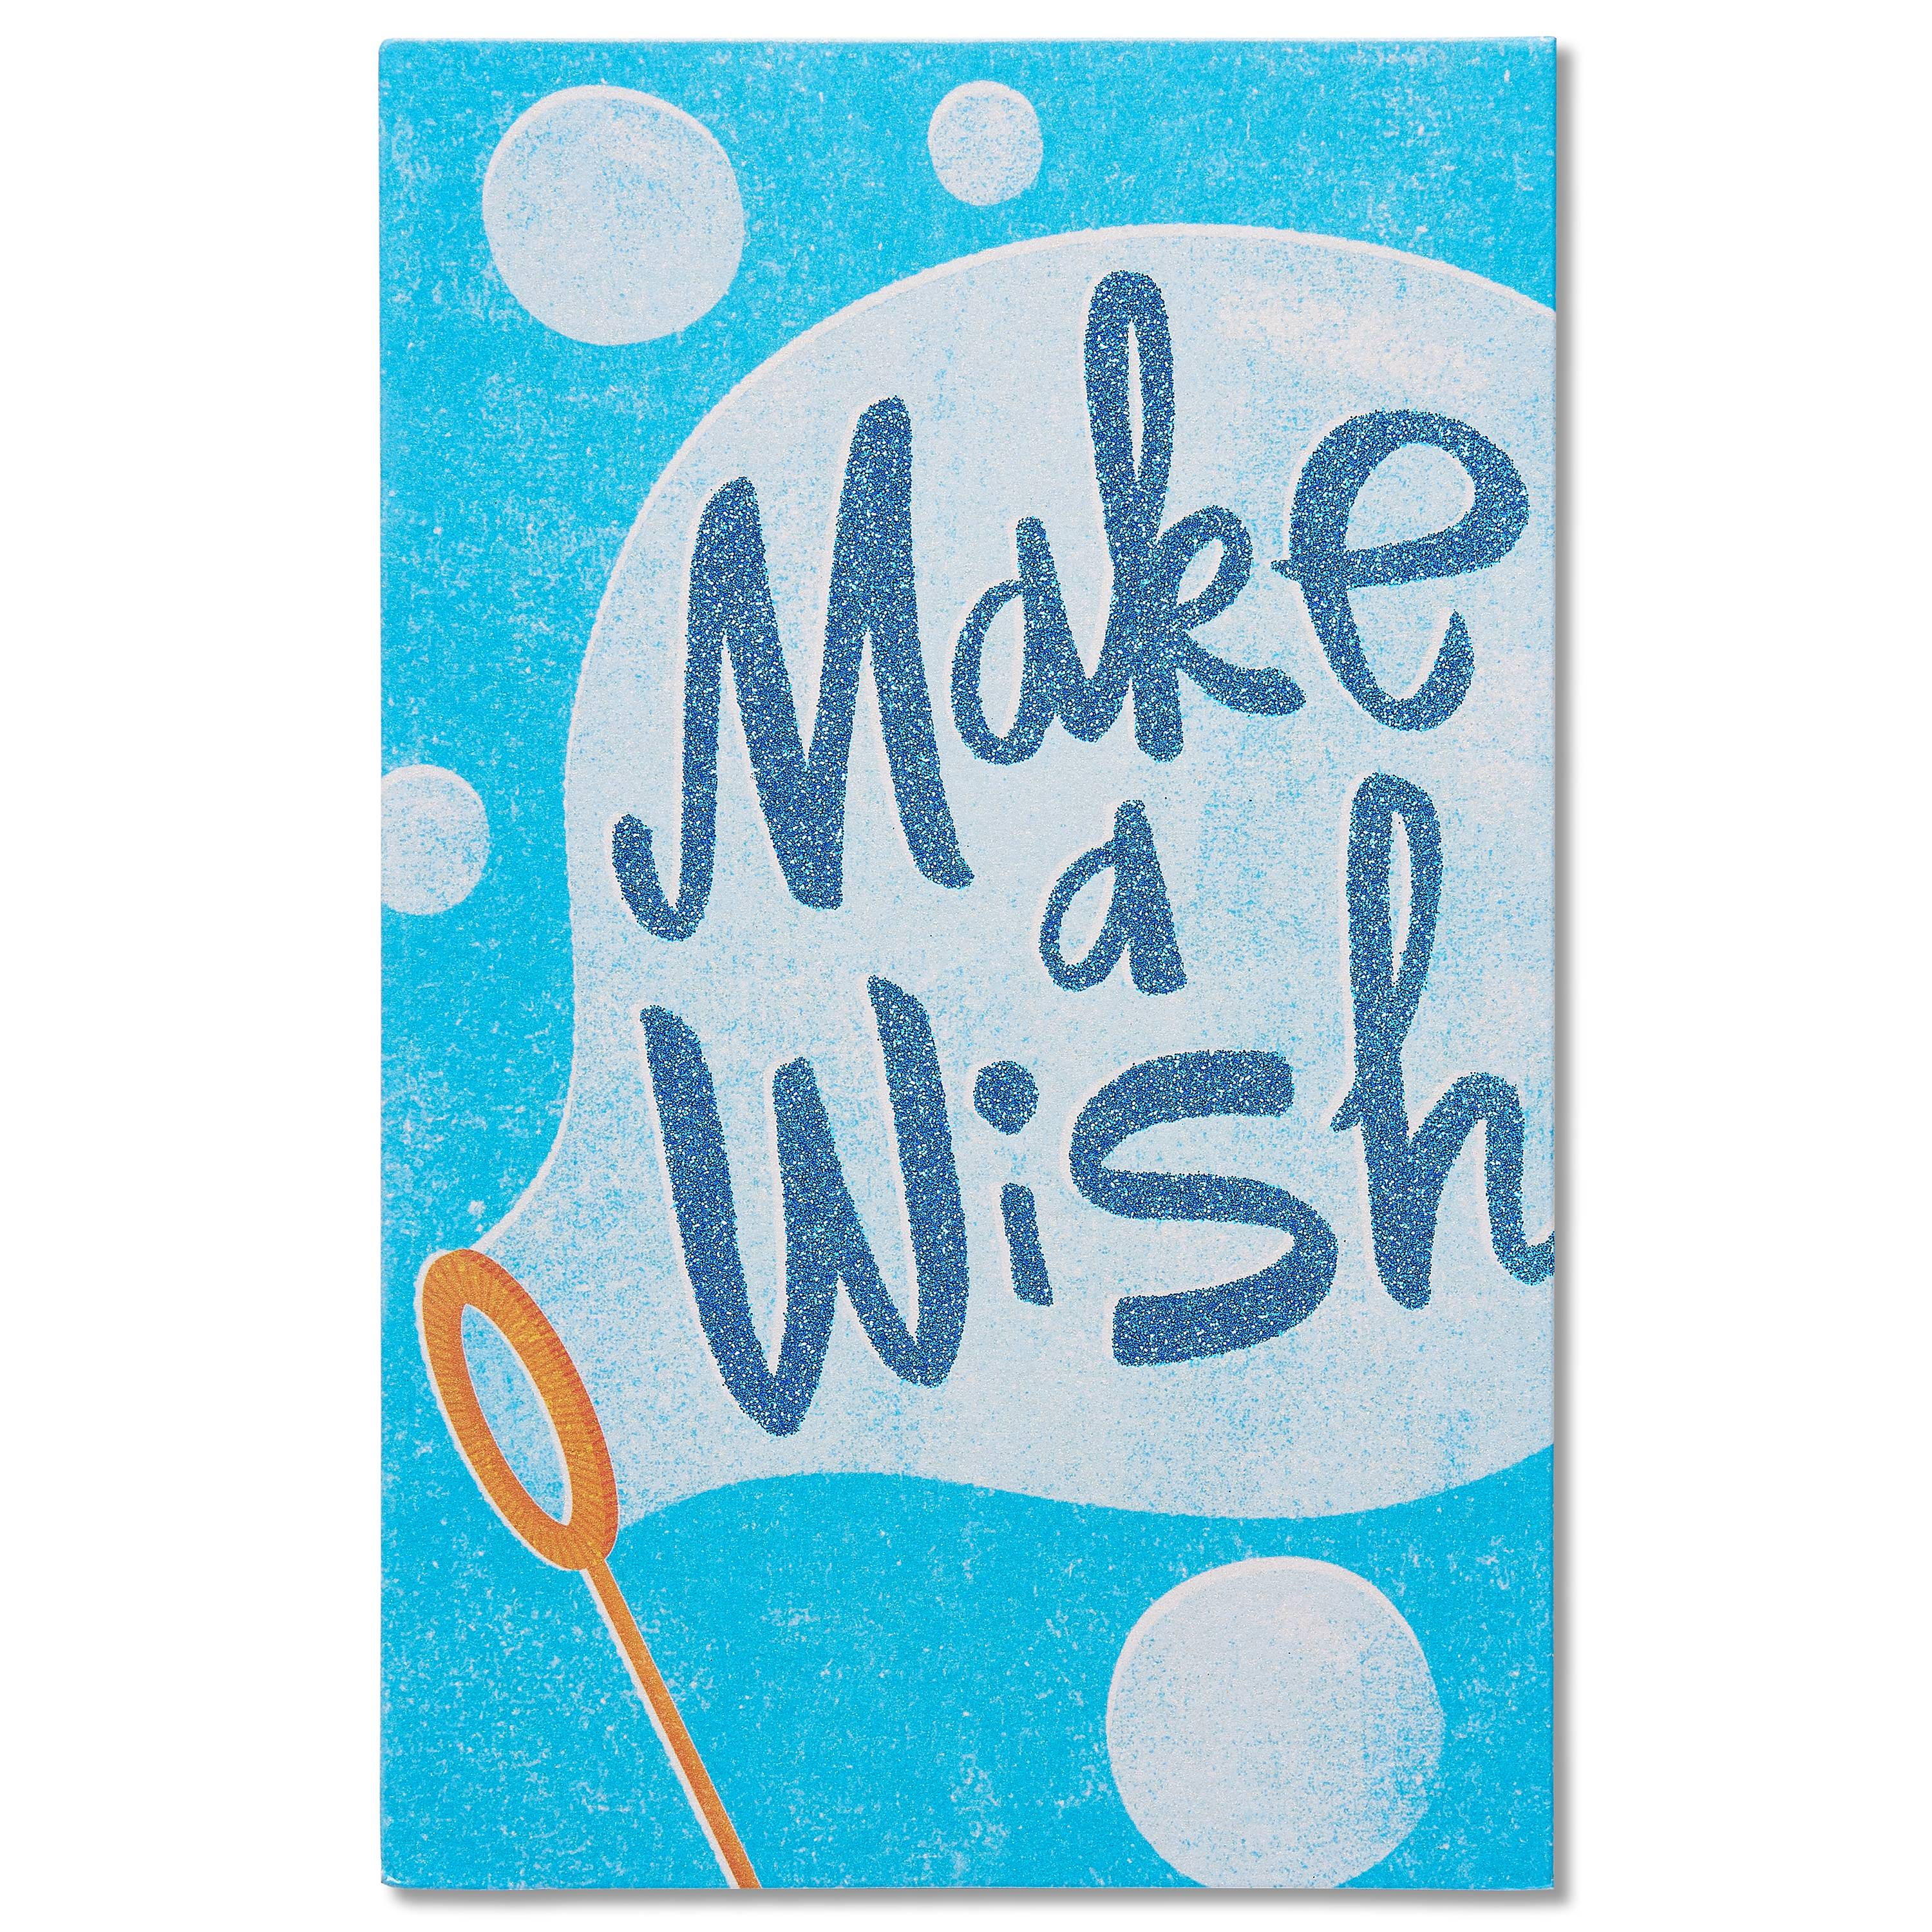 American Greetings Make a Wish Birthday Card with Glitter